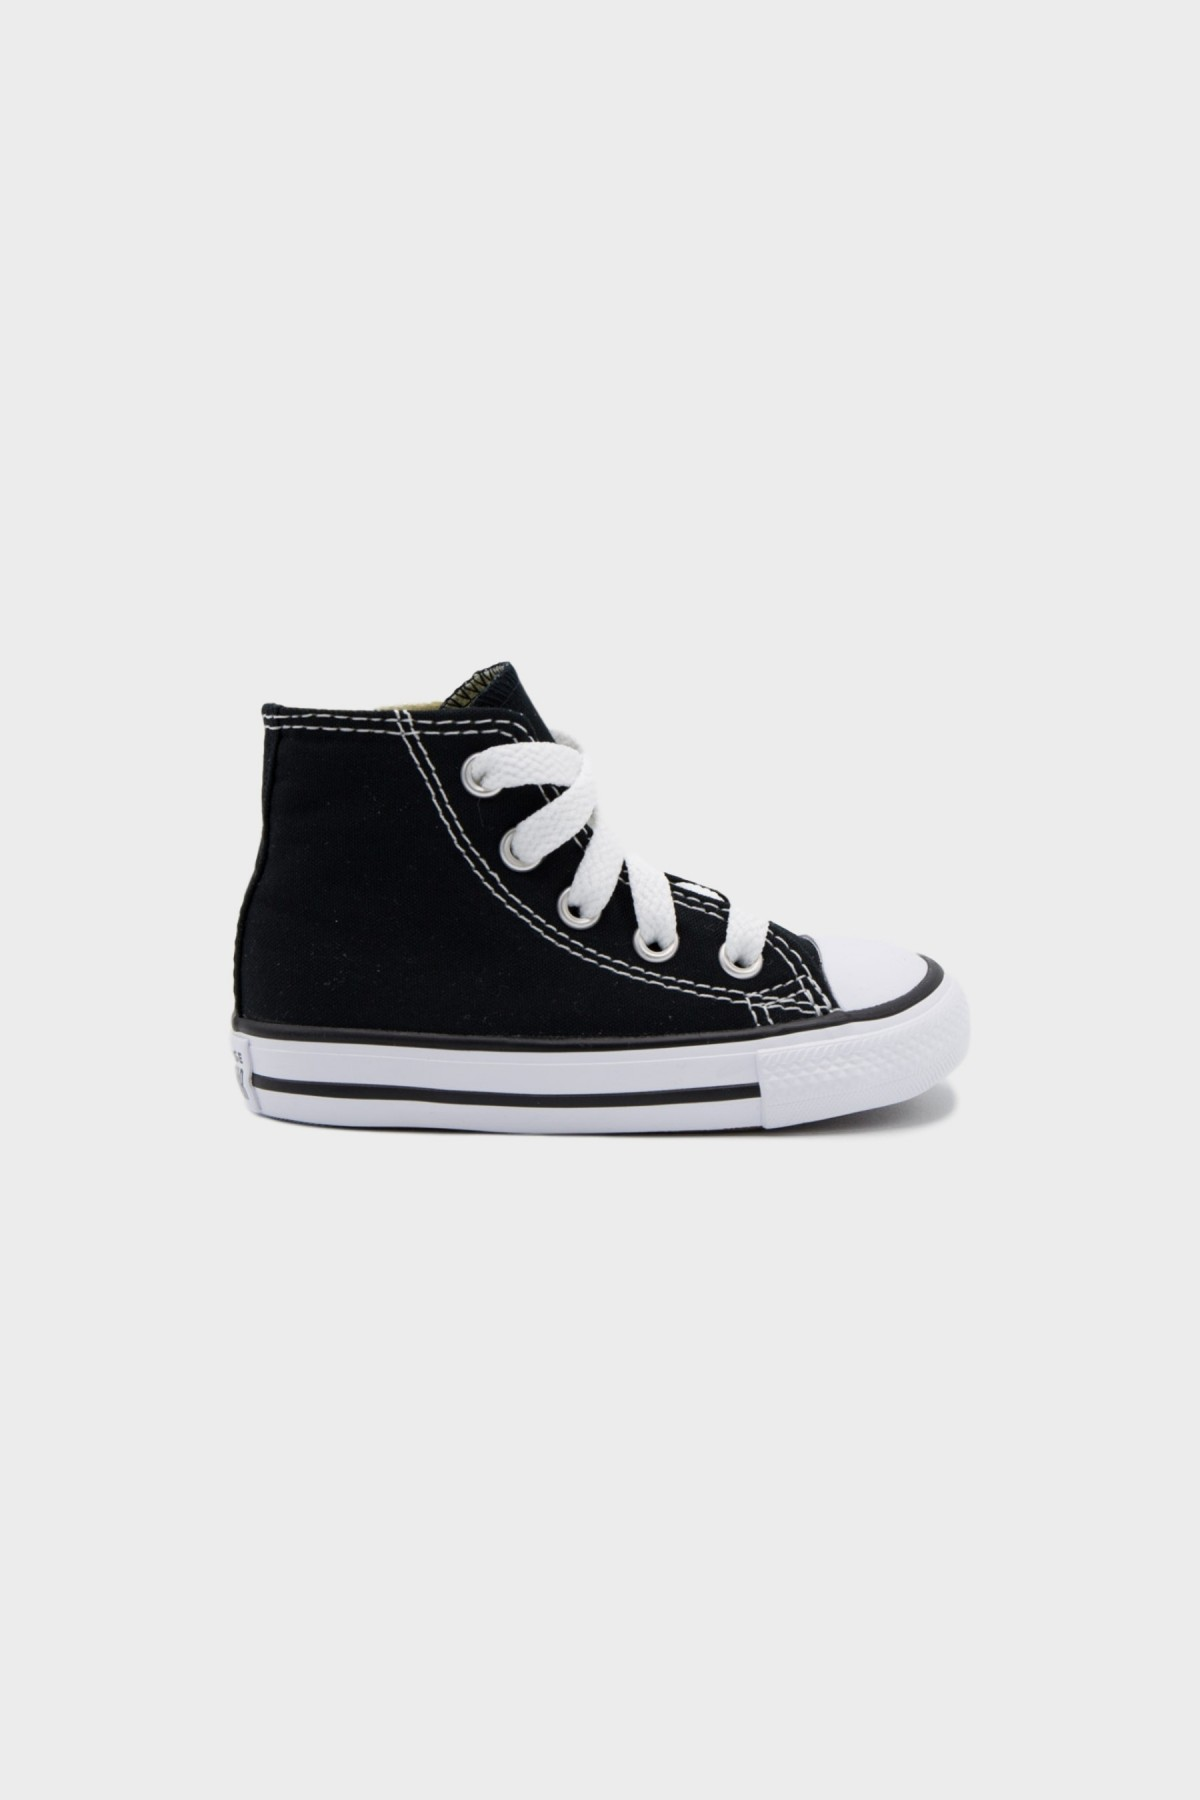 Converse All Stars High Infant in Black White